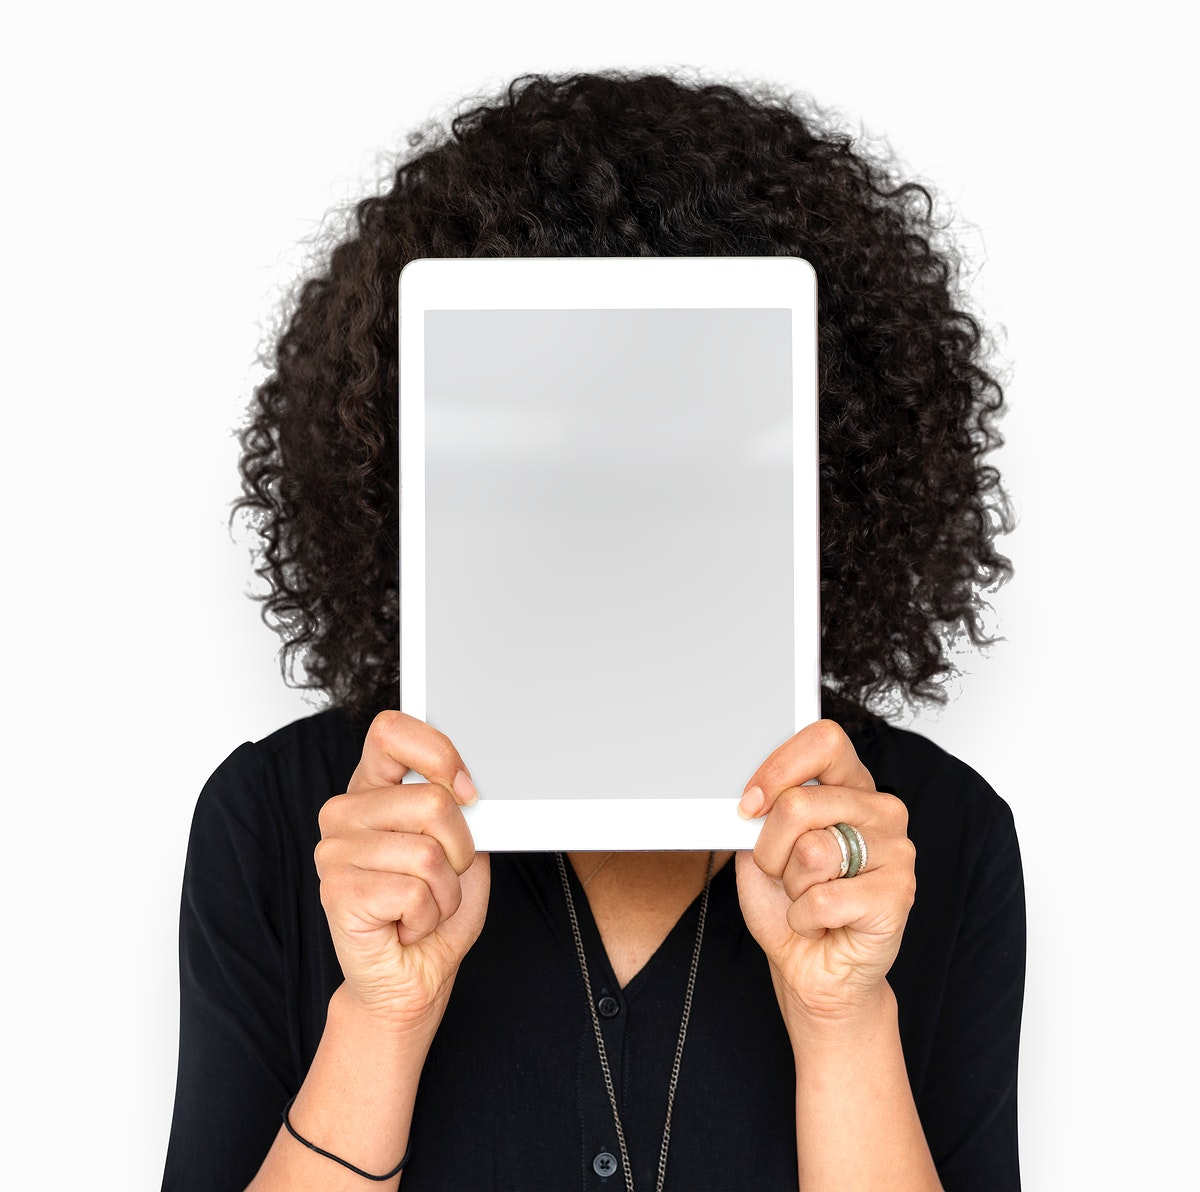 Woman holding tablet covering her face